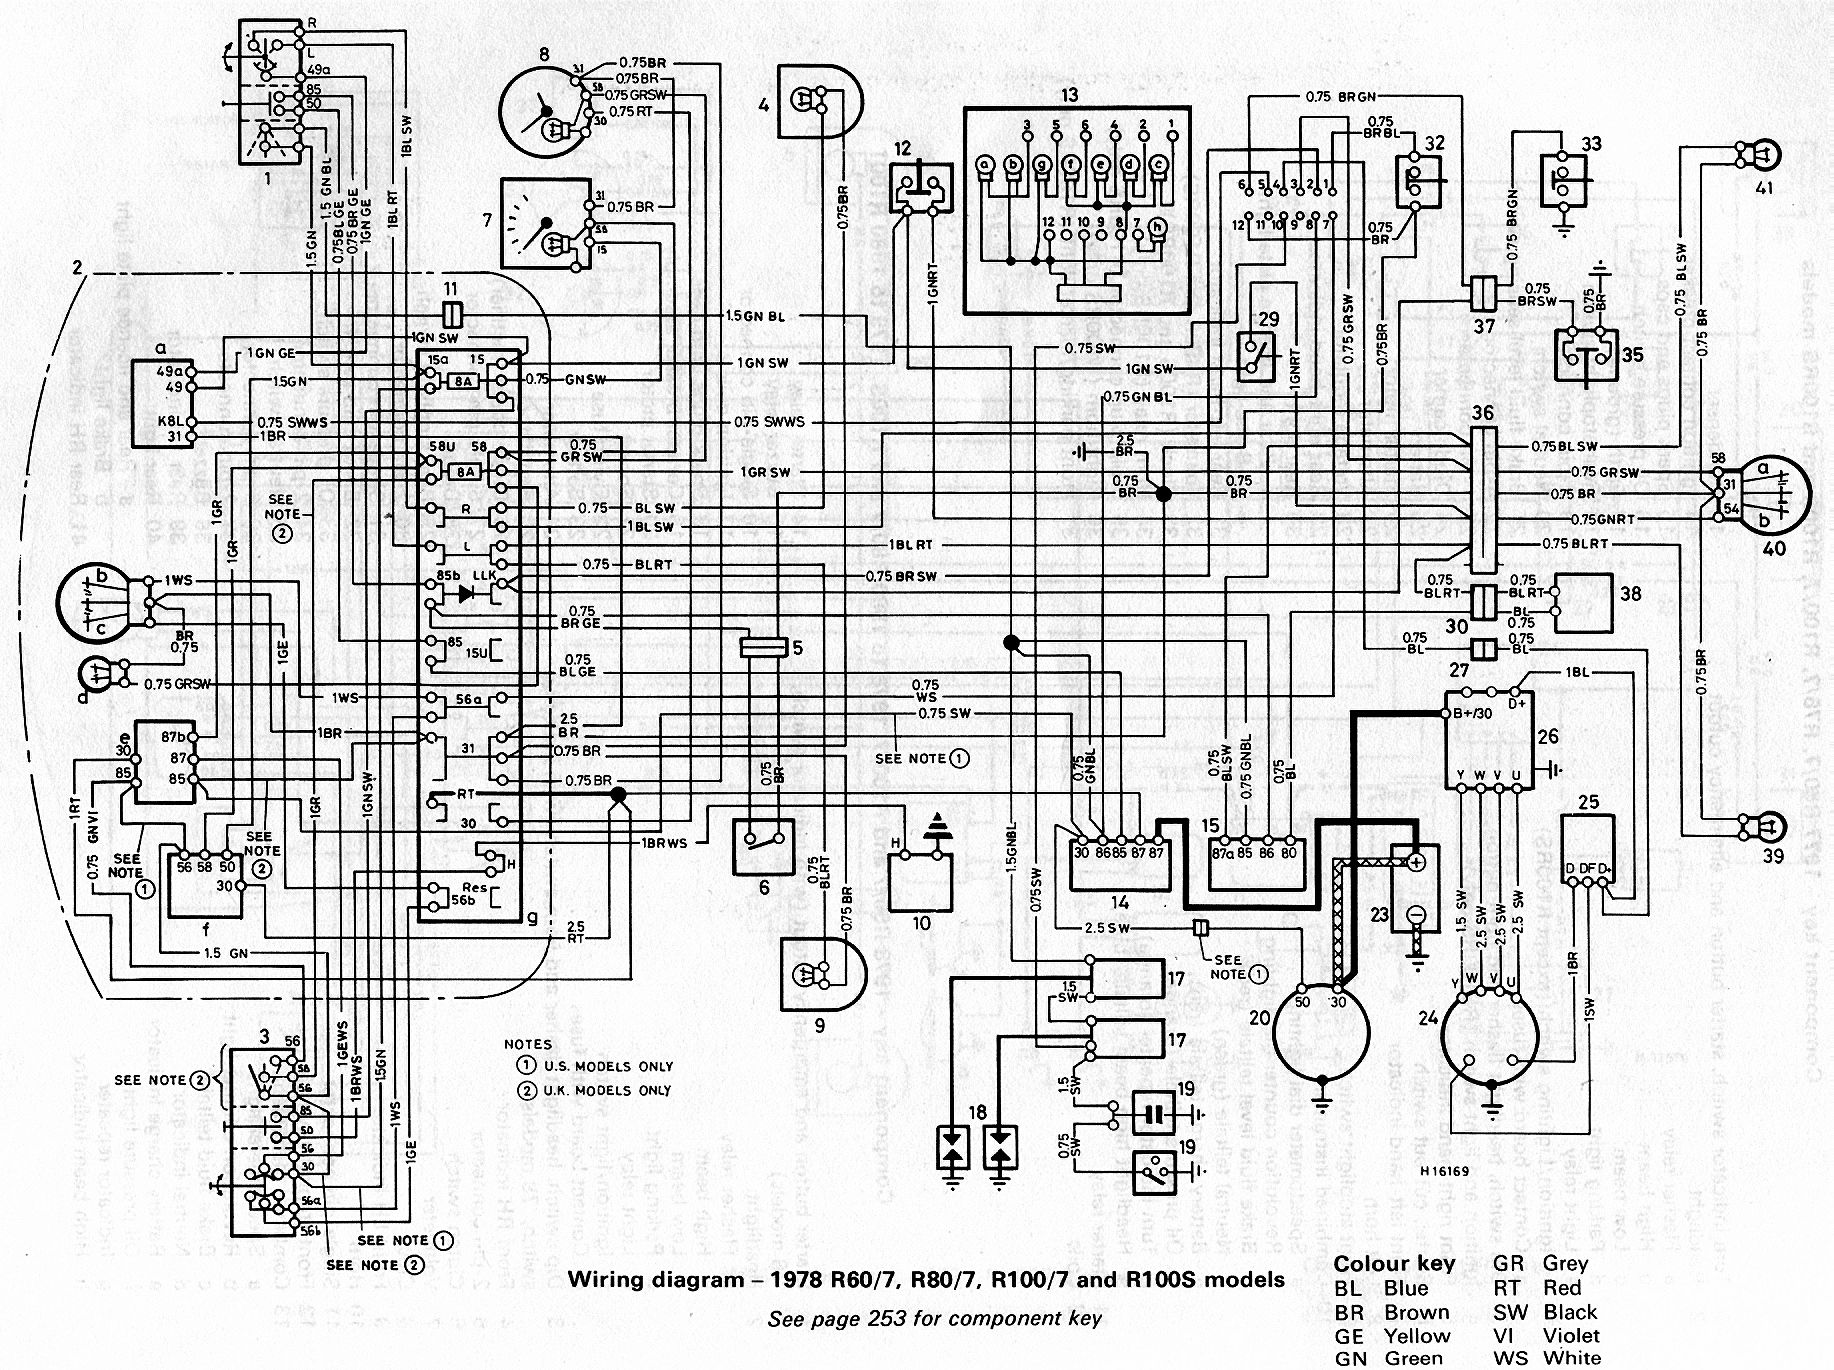 S International Truck Wiring Diagram Wiring Diagram